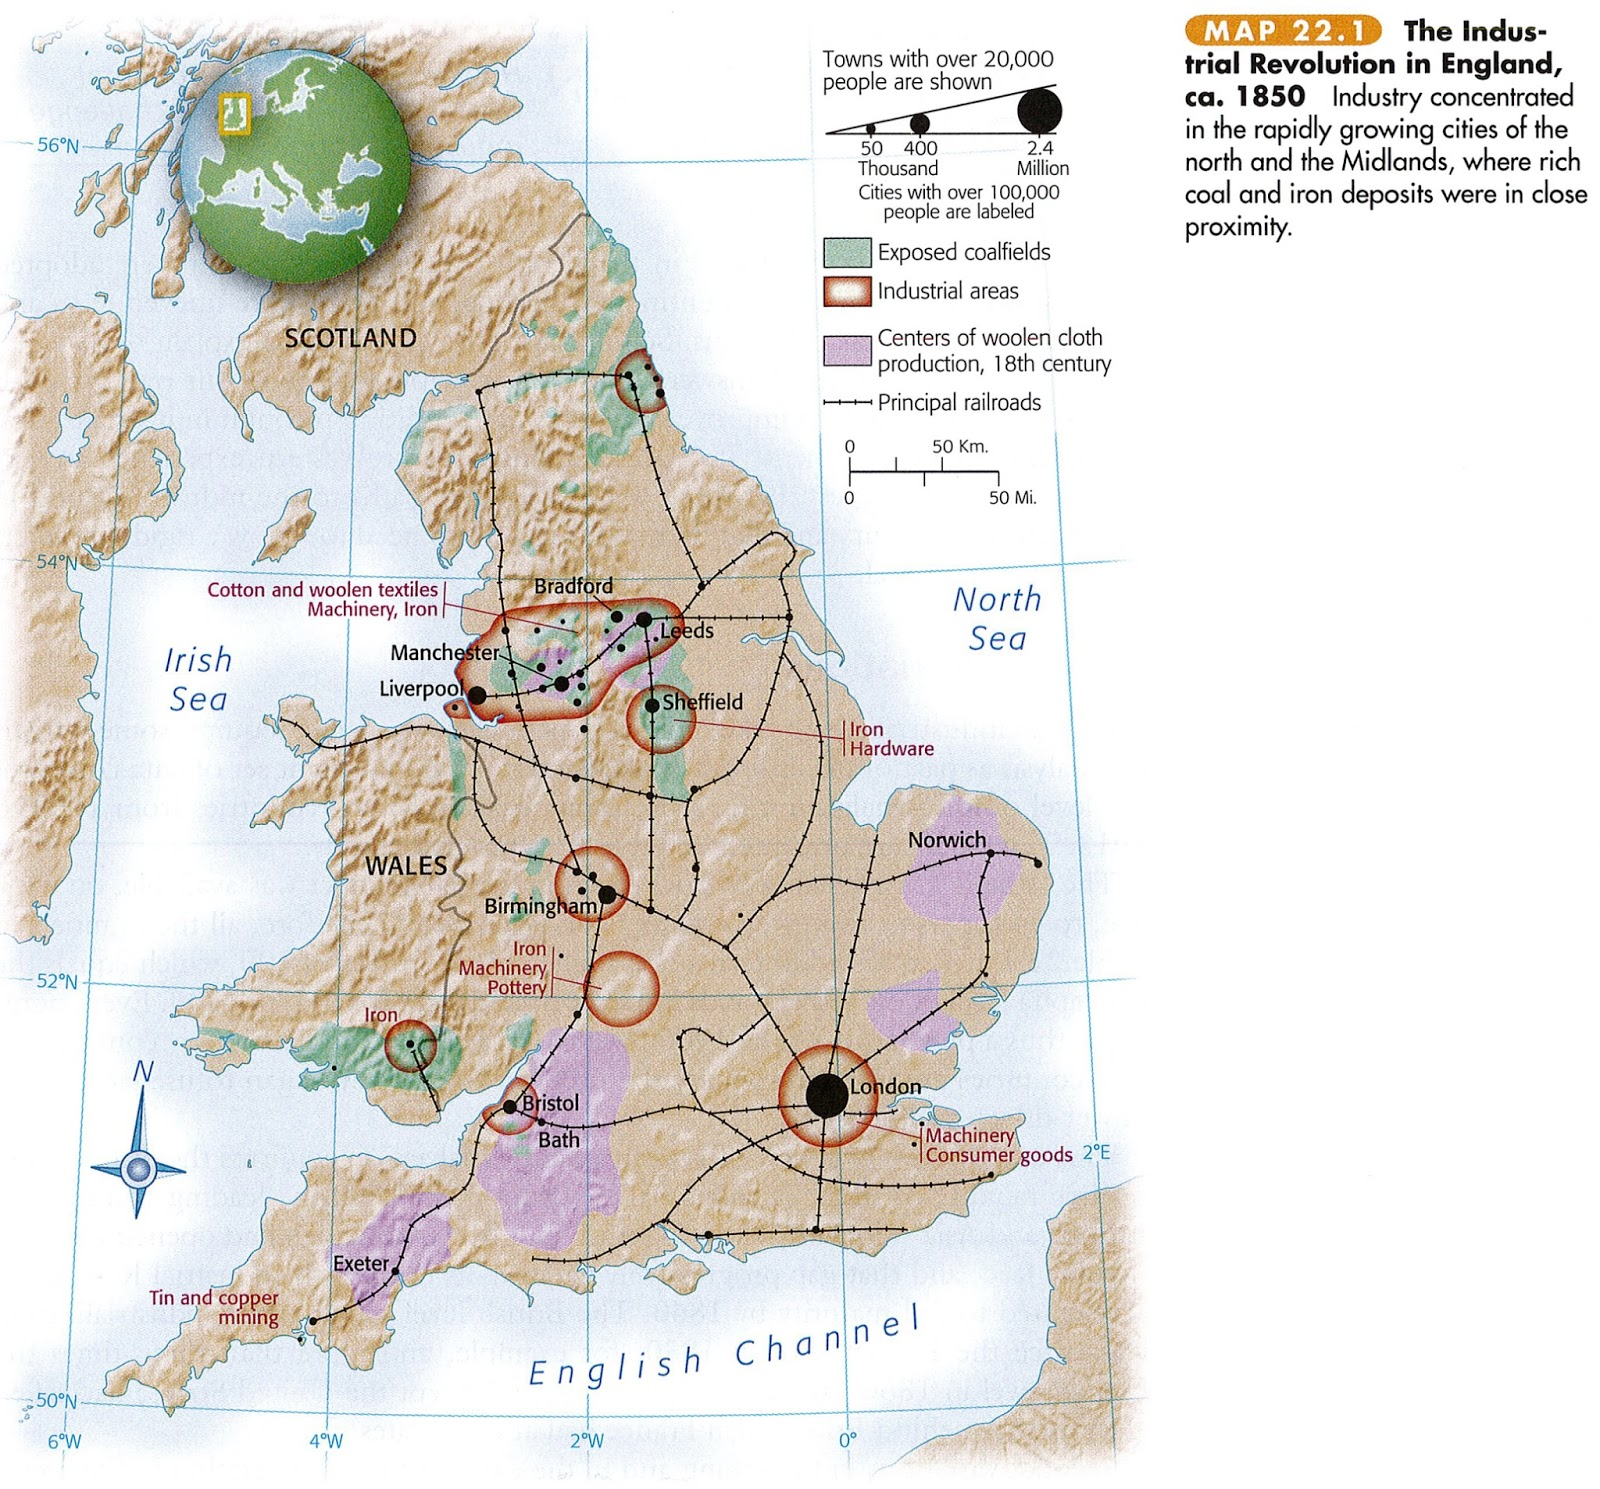 industrial revolution in england The industrial revolution was a cultural and economic shift from cottage industry, traditional agriculture, and manual labor to a system of factory-based manufacturing that included complex .